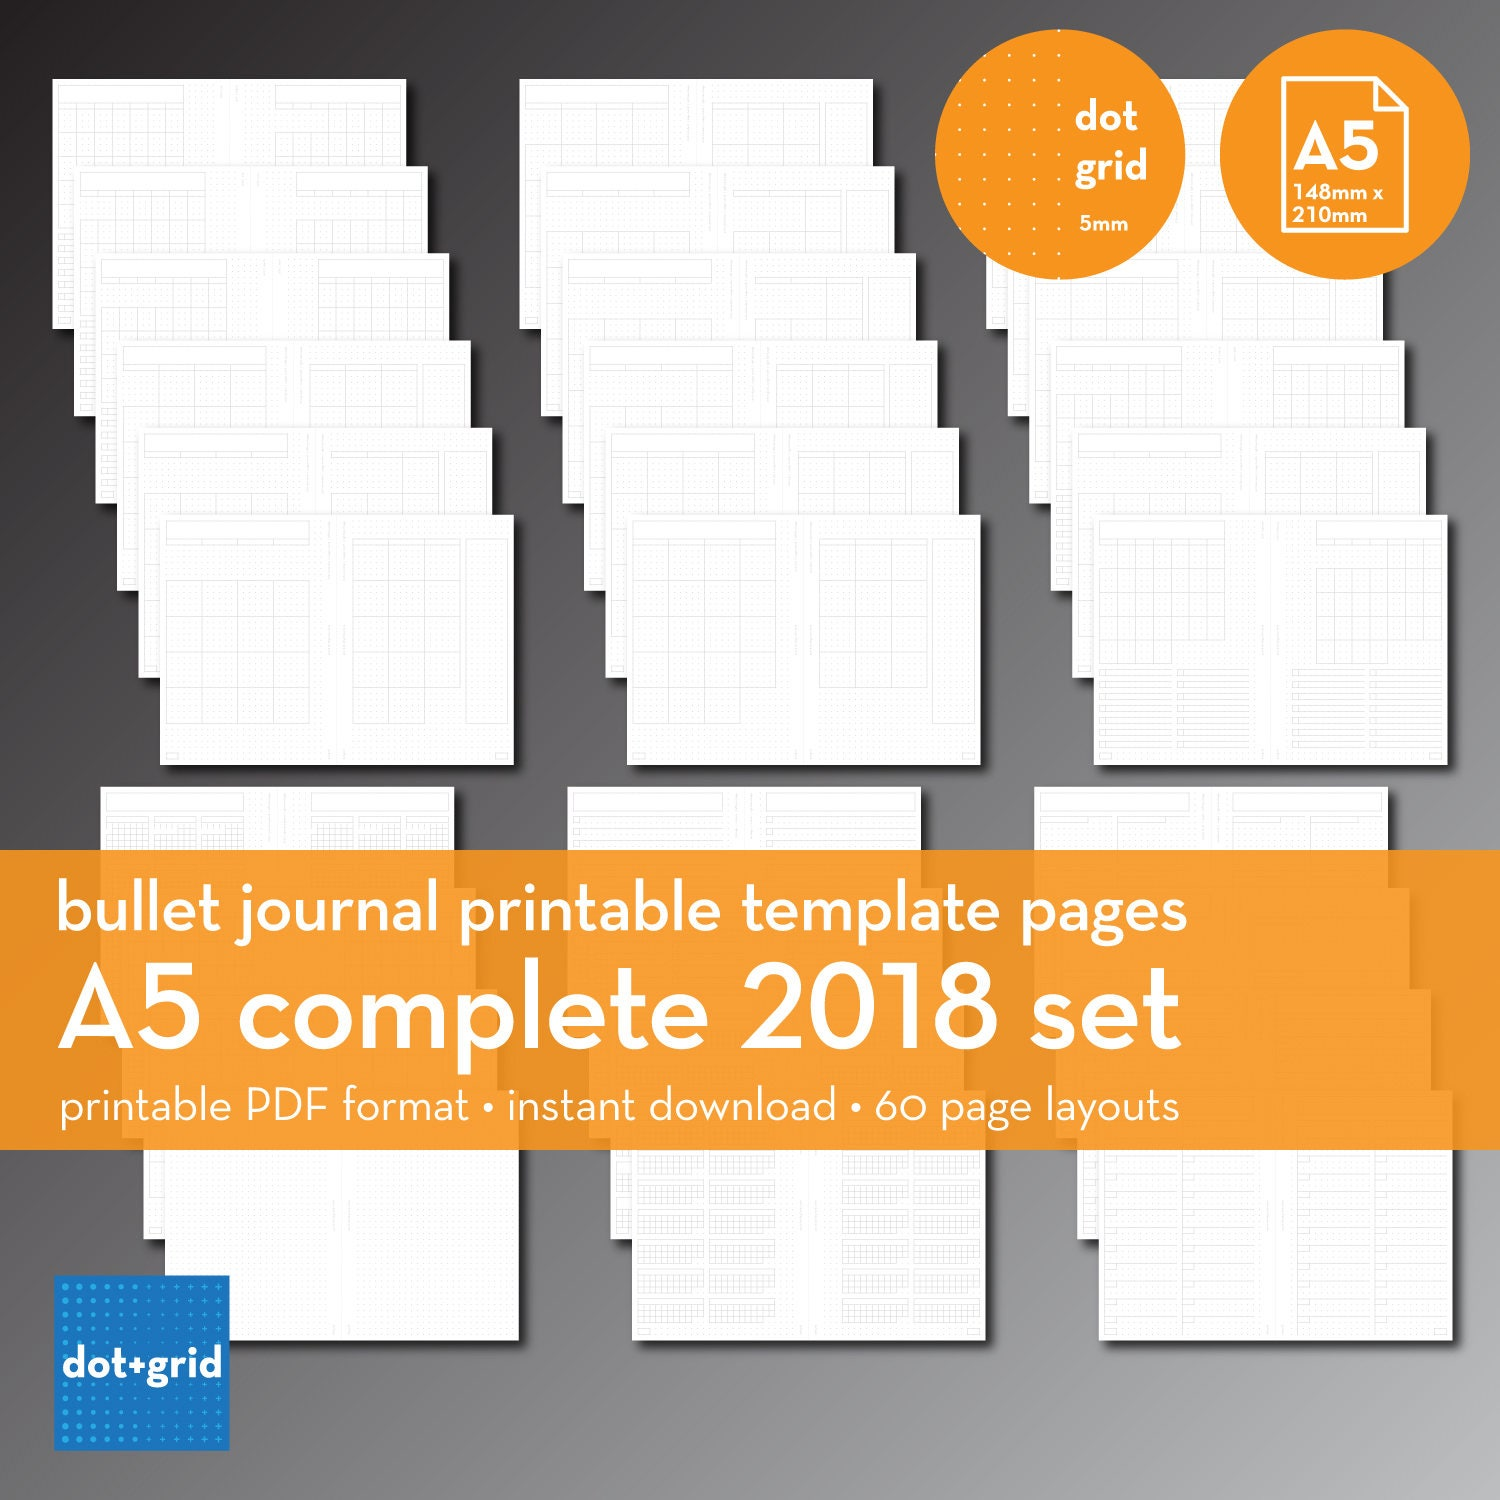 A5 Complete 2018 Set Bullet Journal Printable Templates